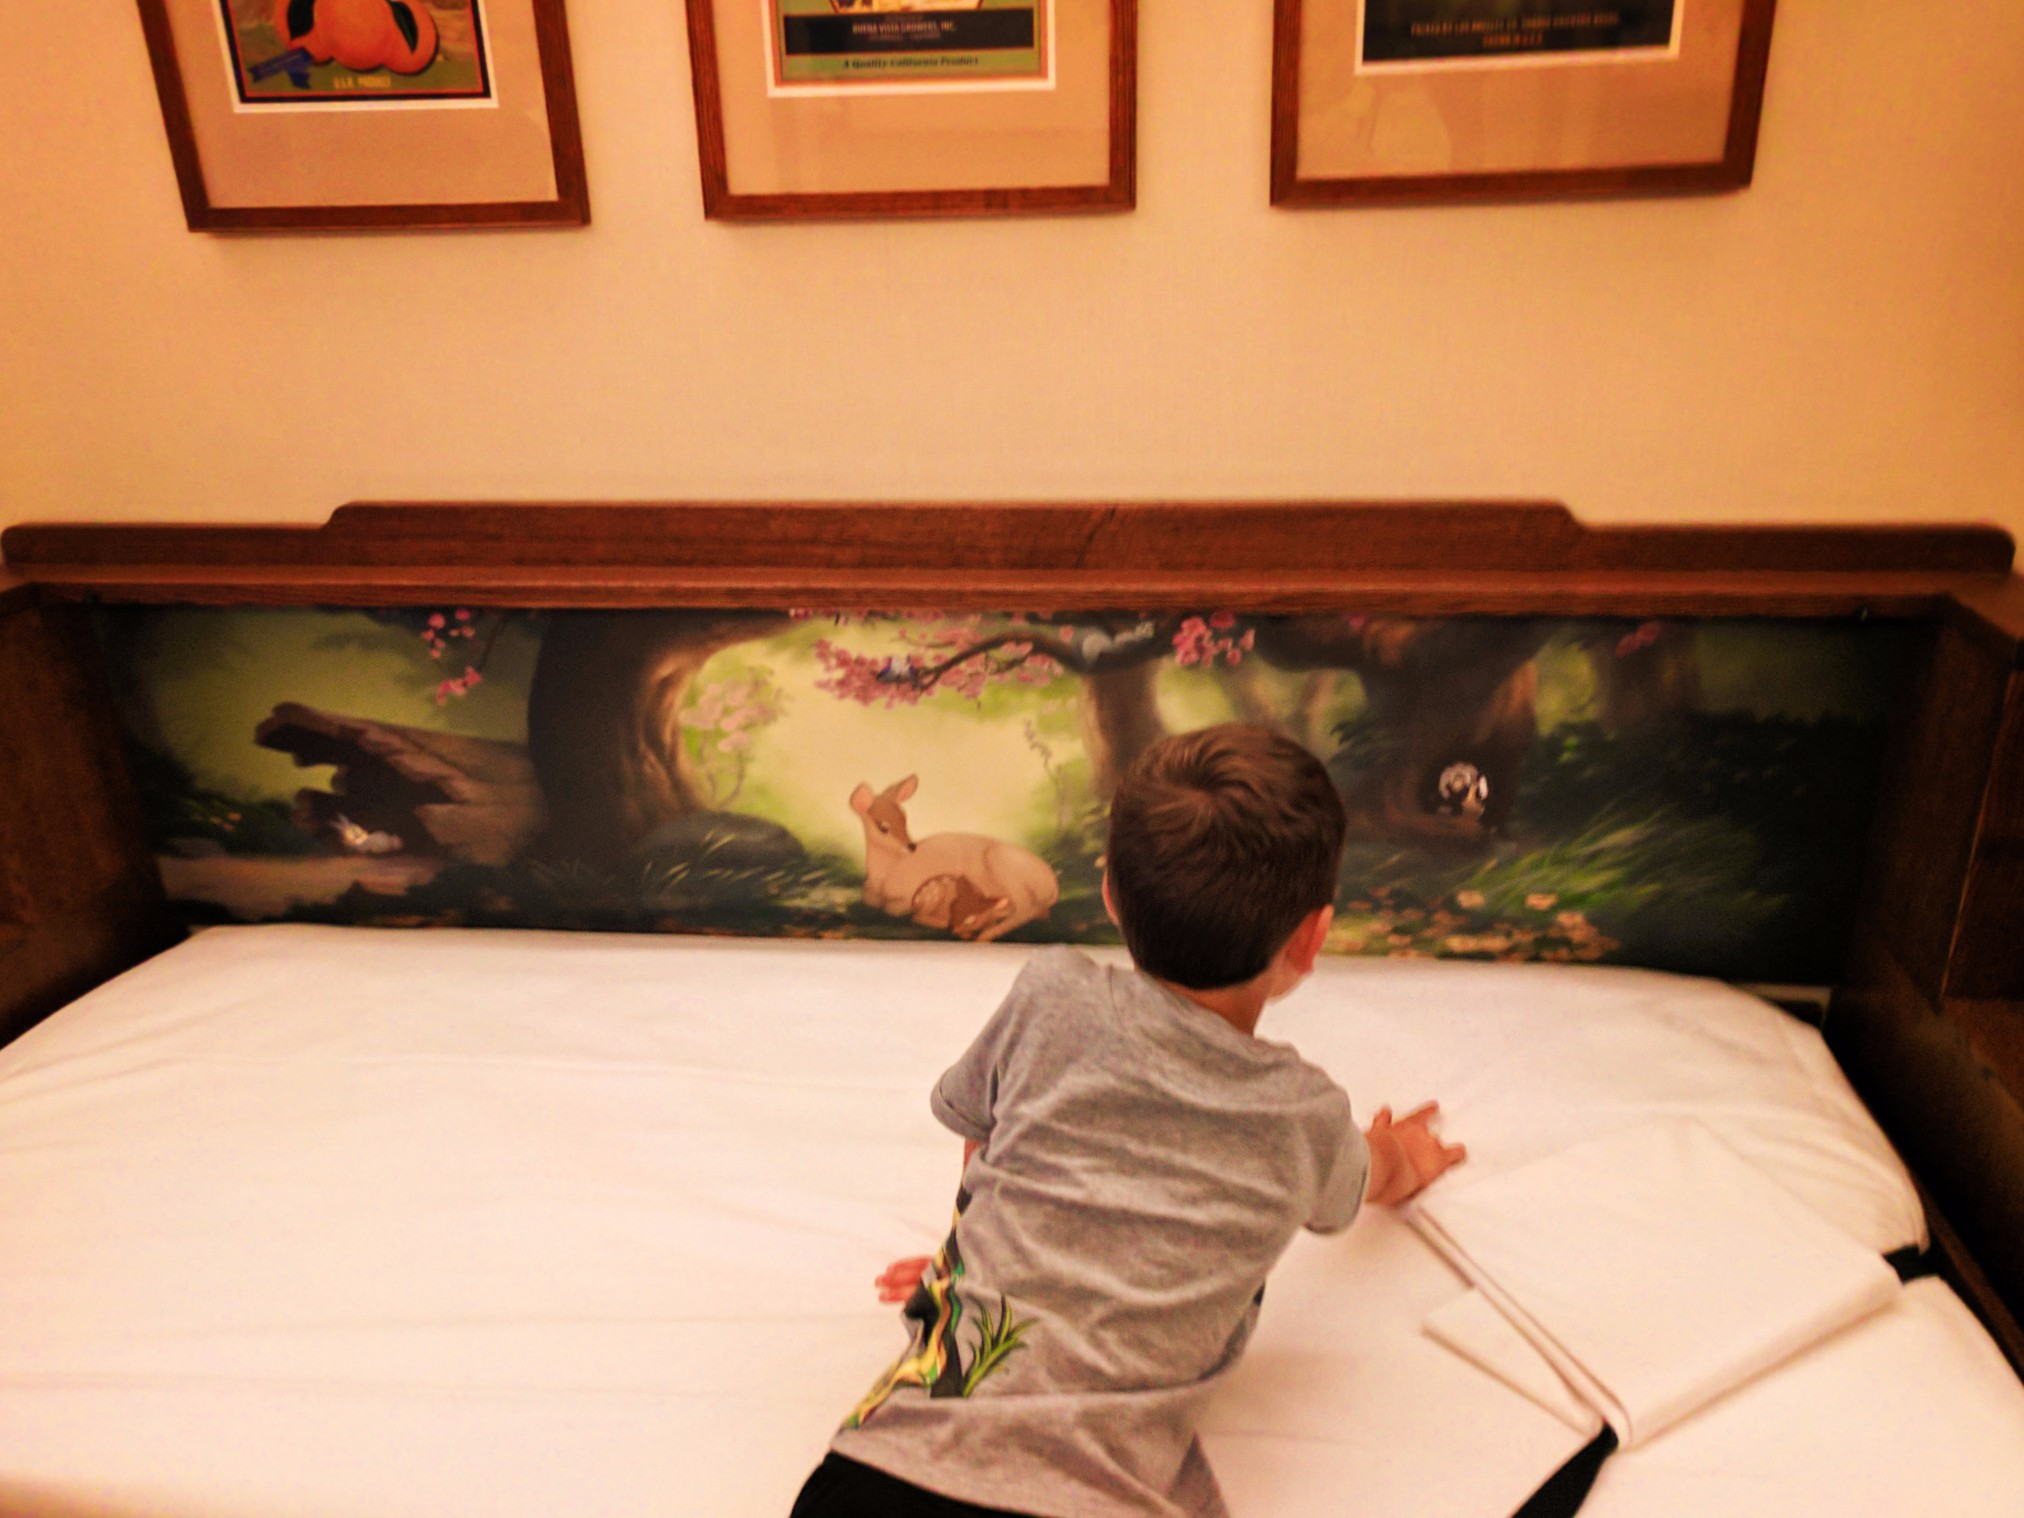 Taylor Family using pullout bed in Disneys Grand Californian Hotel Disneyland 1